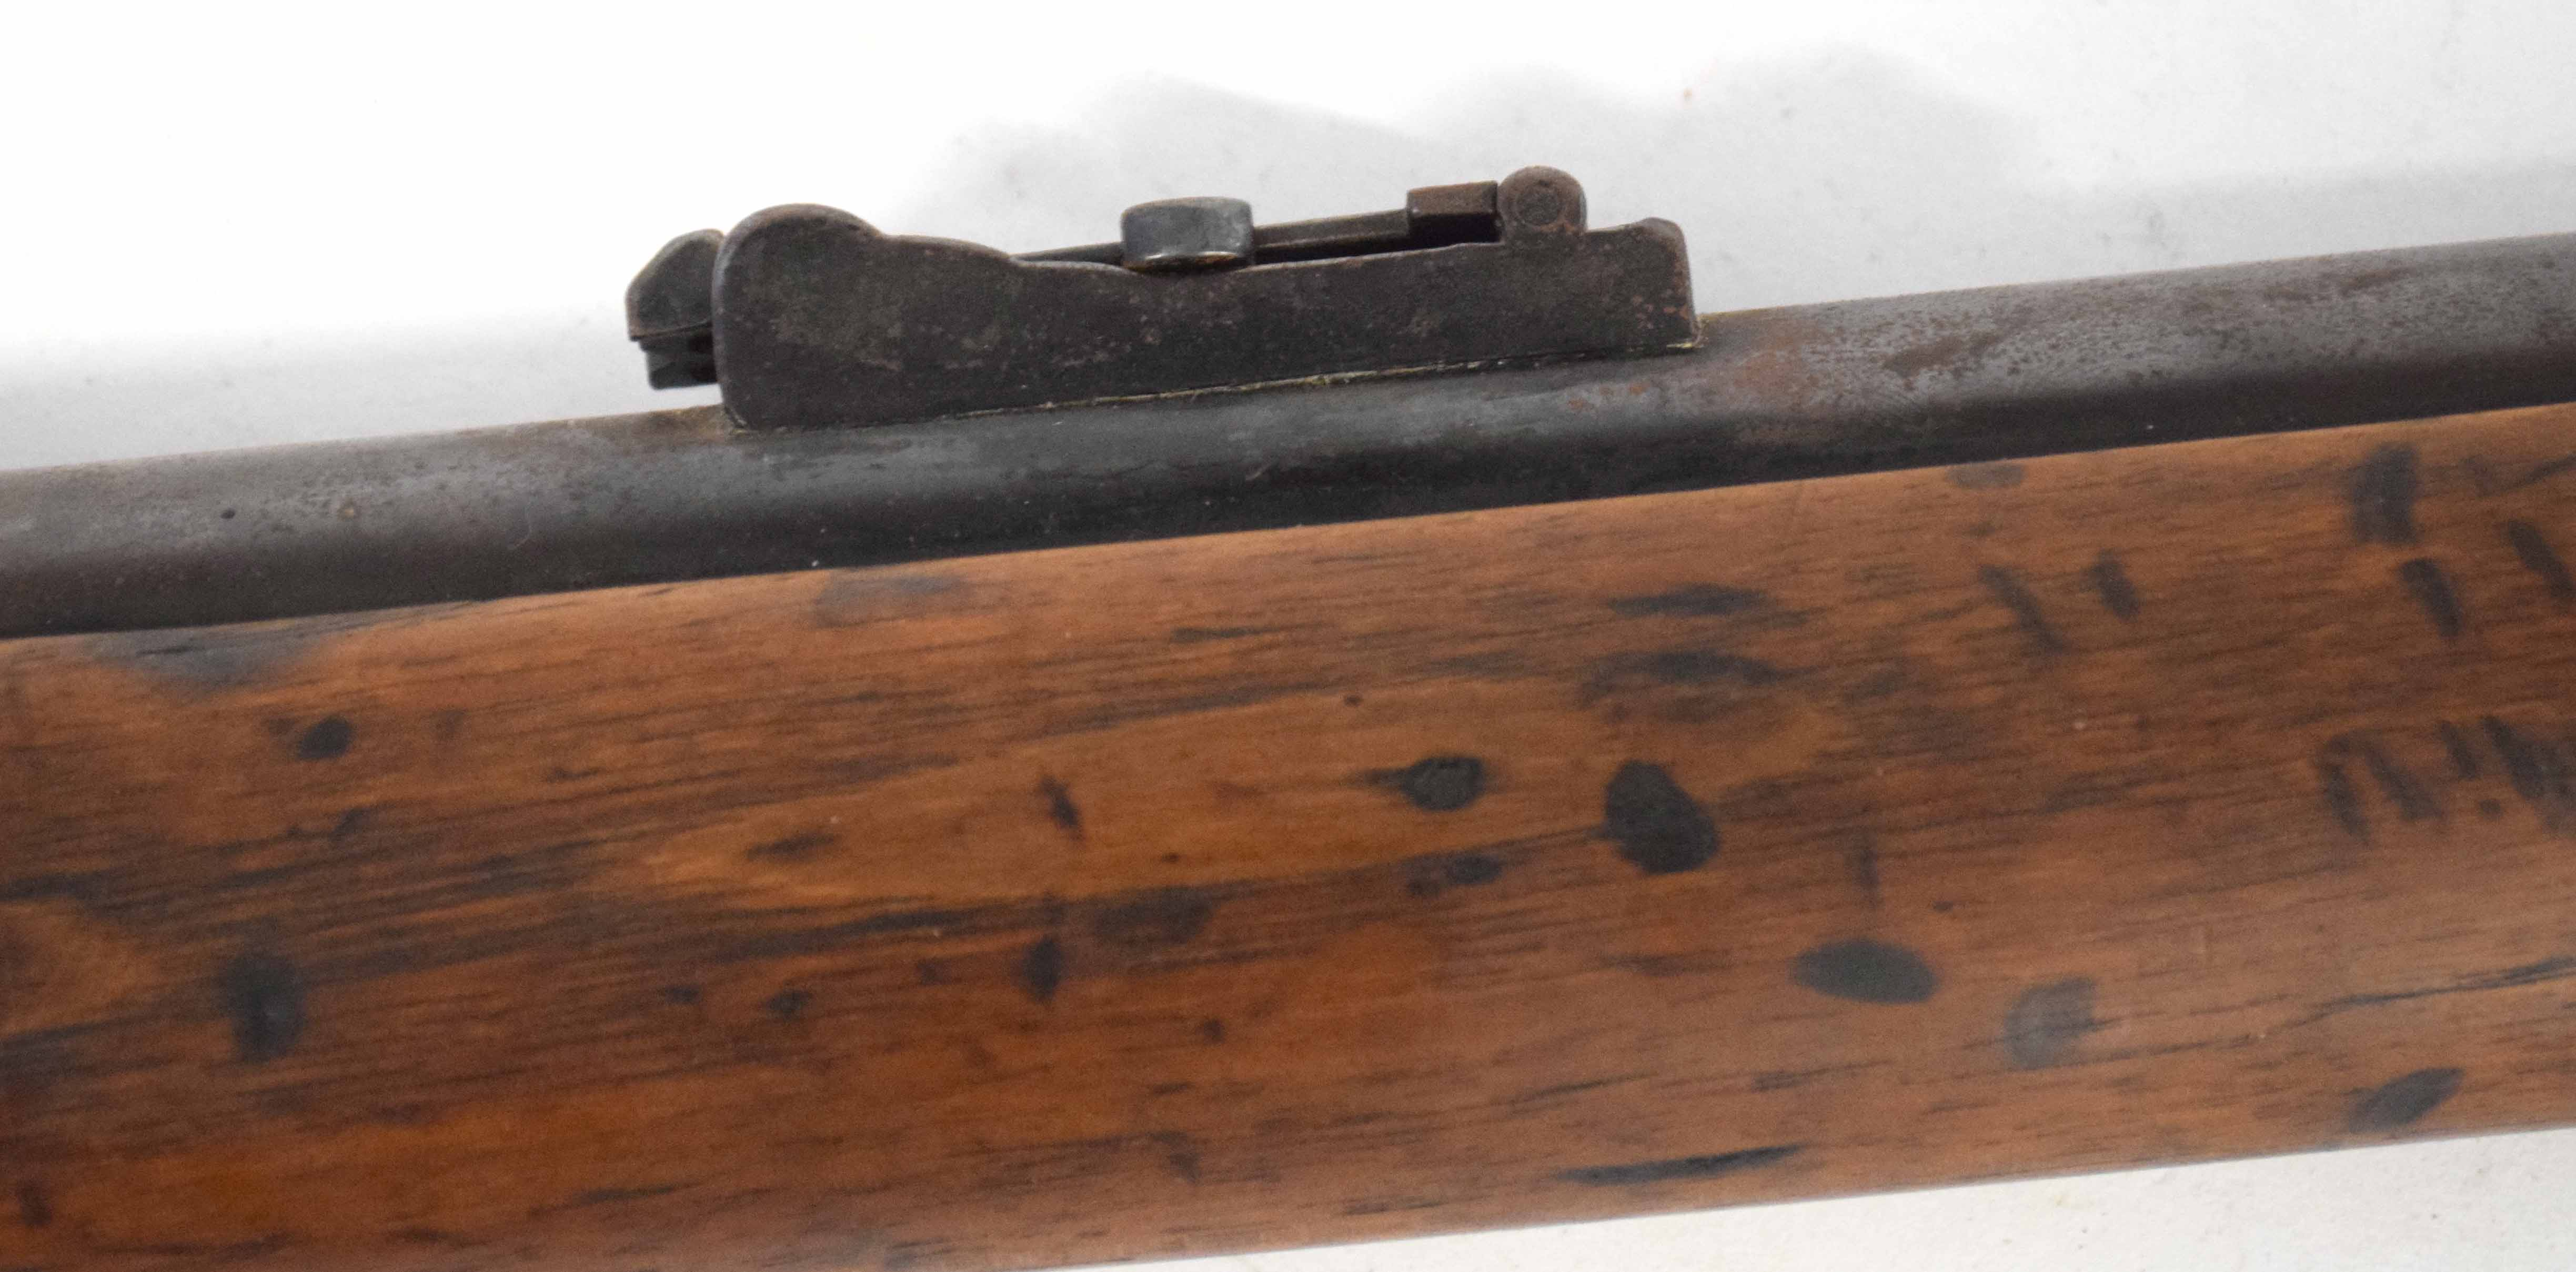 19th century two-band percussion cap rifle with ladder sight, made by James Bryce, Edinburgh, with - Image 3 of 3